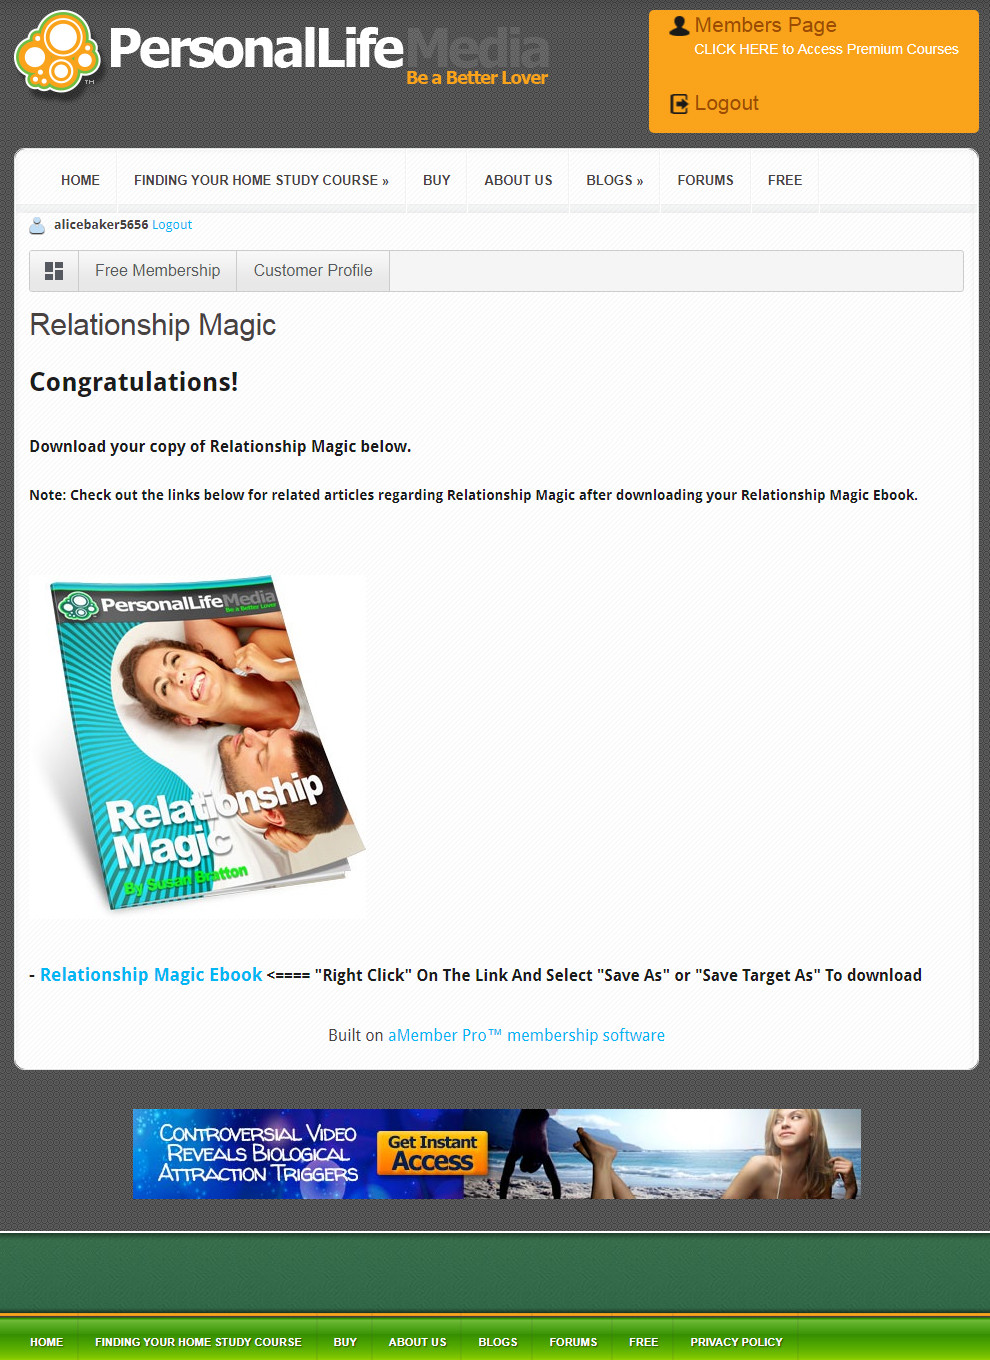 Susan Bratton's Relationship Magic Download Page